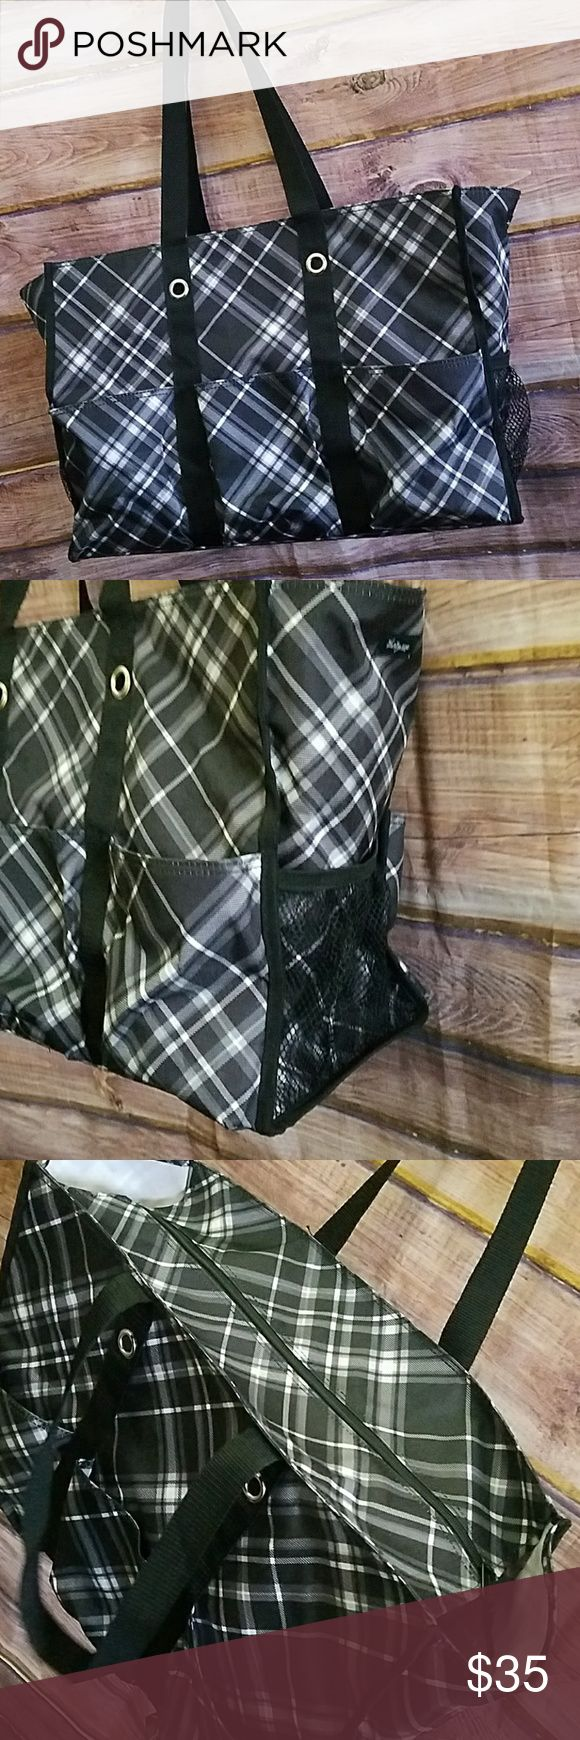 Thirty One super organizing zip top utility tote Thirty One super sized tote measures 14 inches high by 19 and a half inches wide by 7 & a half inches deep. It has a zip top. It has lots of pockets and tons of space.  It is the black and white pick me plaid pattern. Thirty One Bags Totes